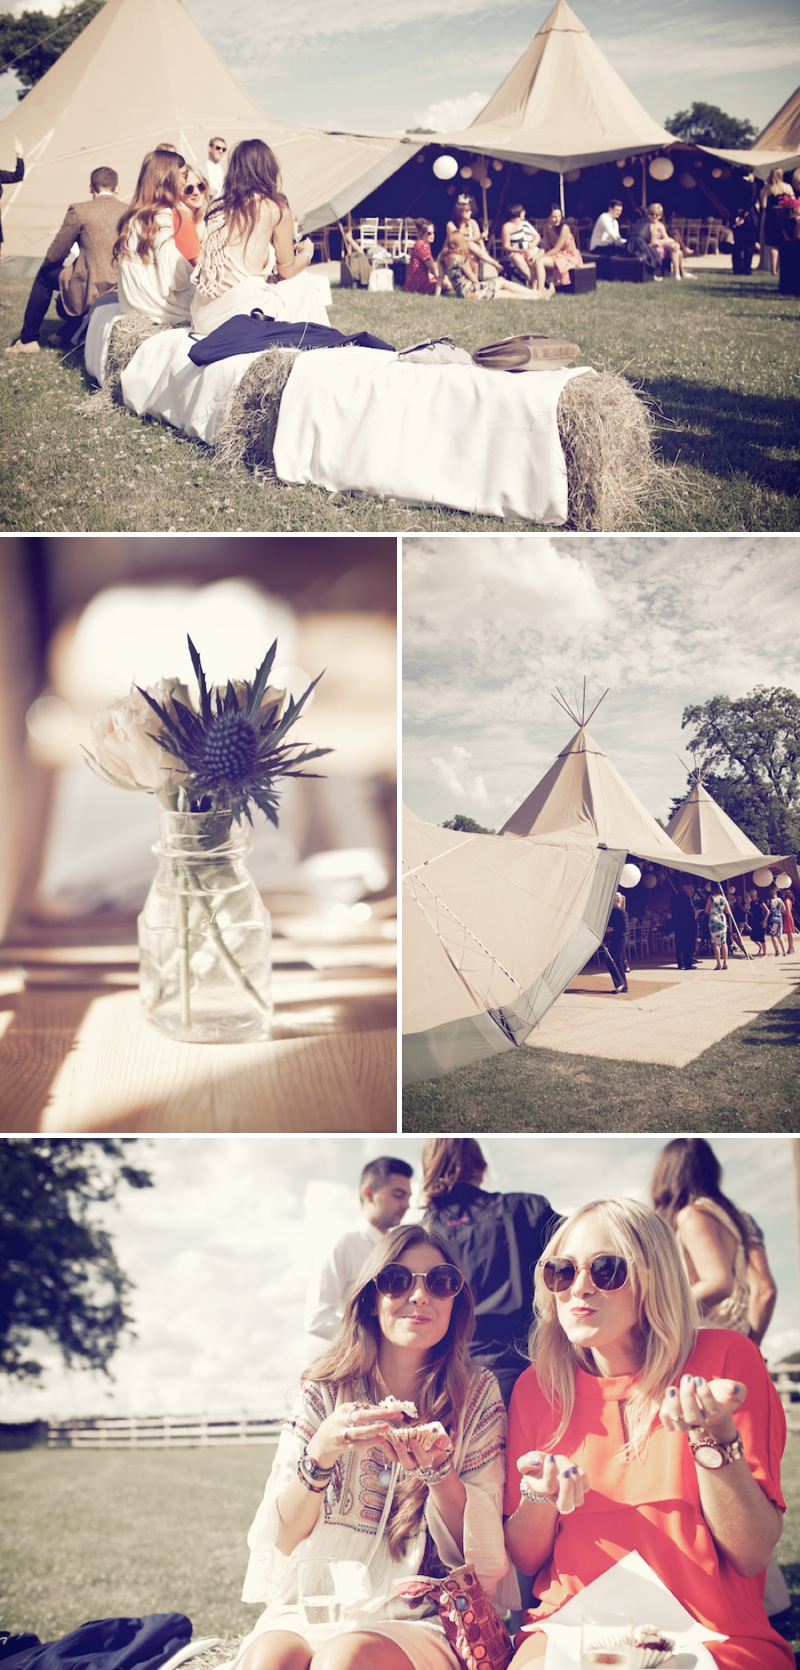 An Ethereal Bohemian Inspired Wedding At Standlow Farm With Tipis From Papakata A David Fielden Dress And Juliet Cap Veil With A Sweet Avalanche Rose Bouquet 9 Silver Words.